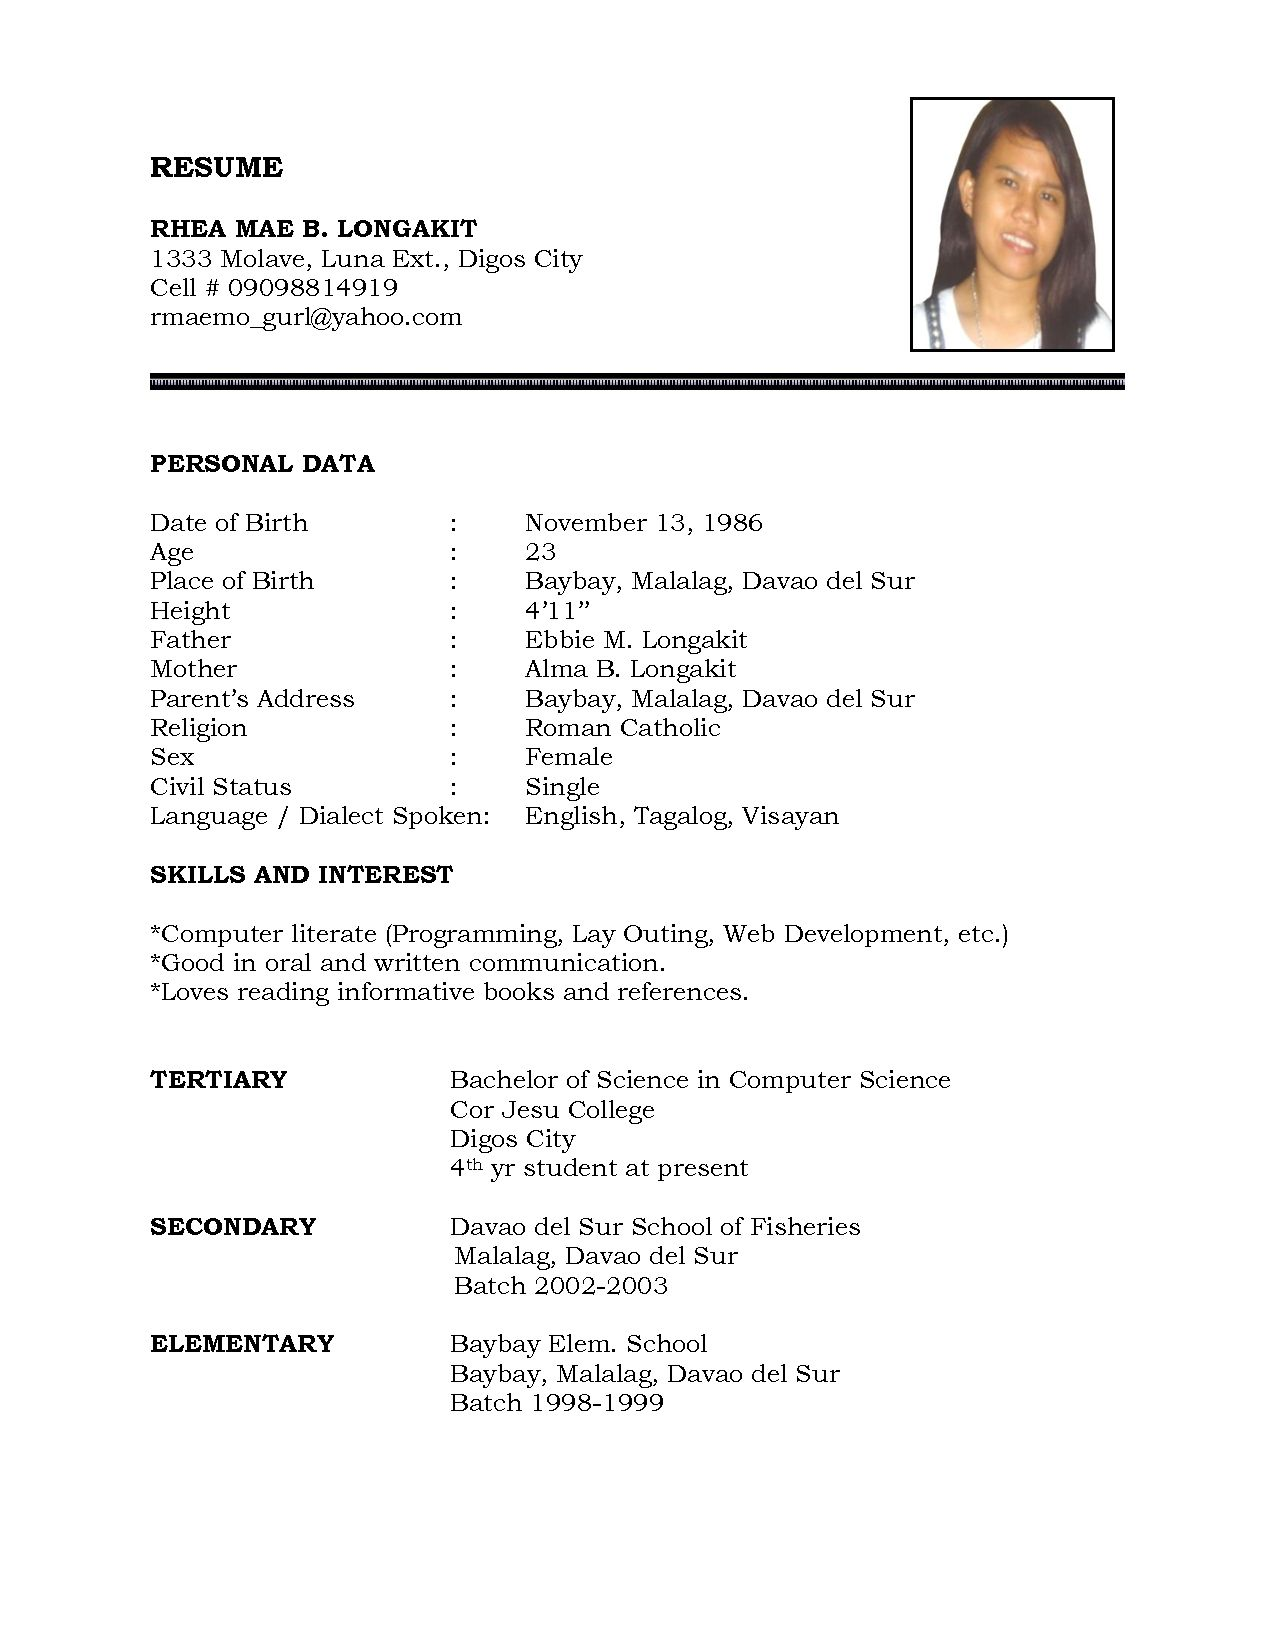 resume sample simple de9e2a60f the simple format of resume for job - Format For Resume For Job